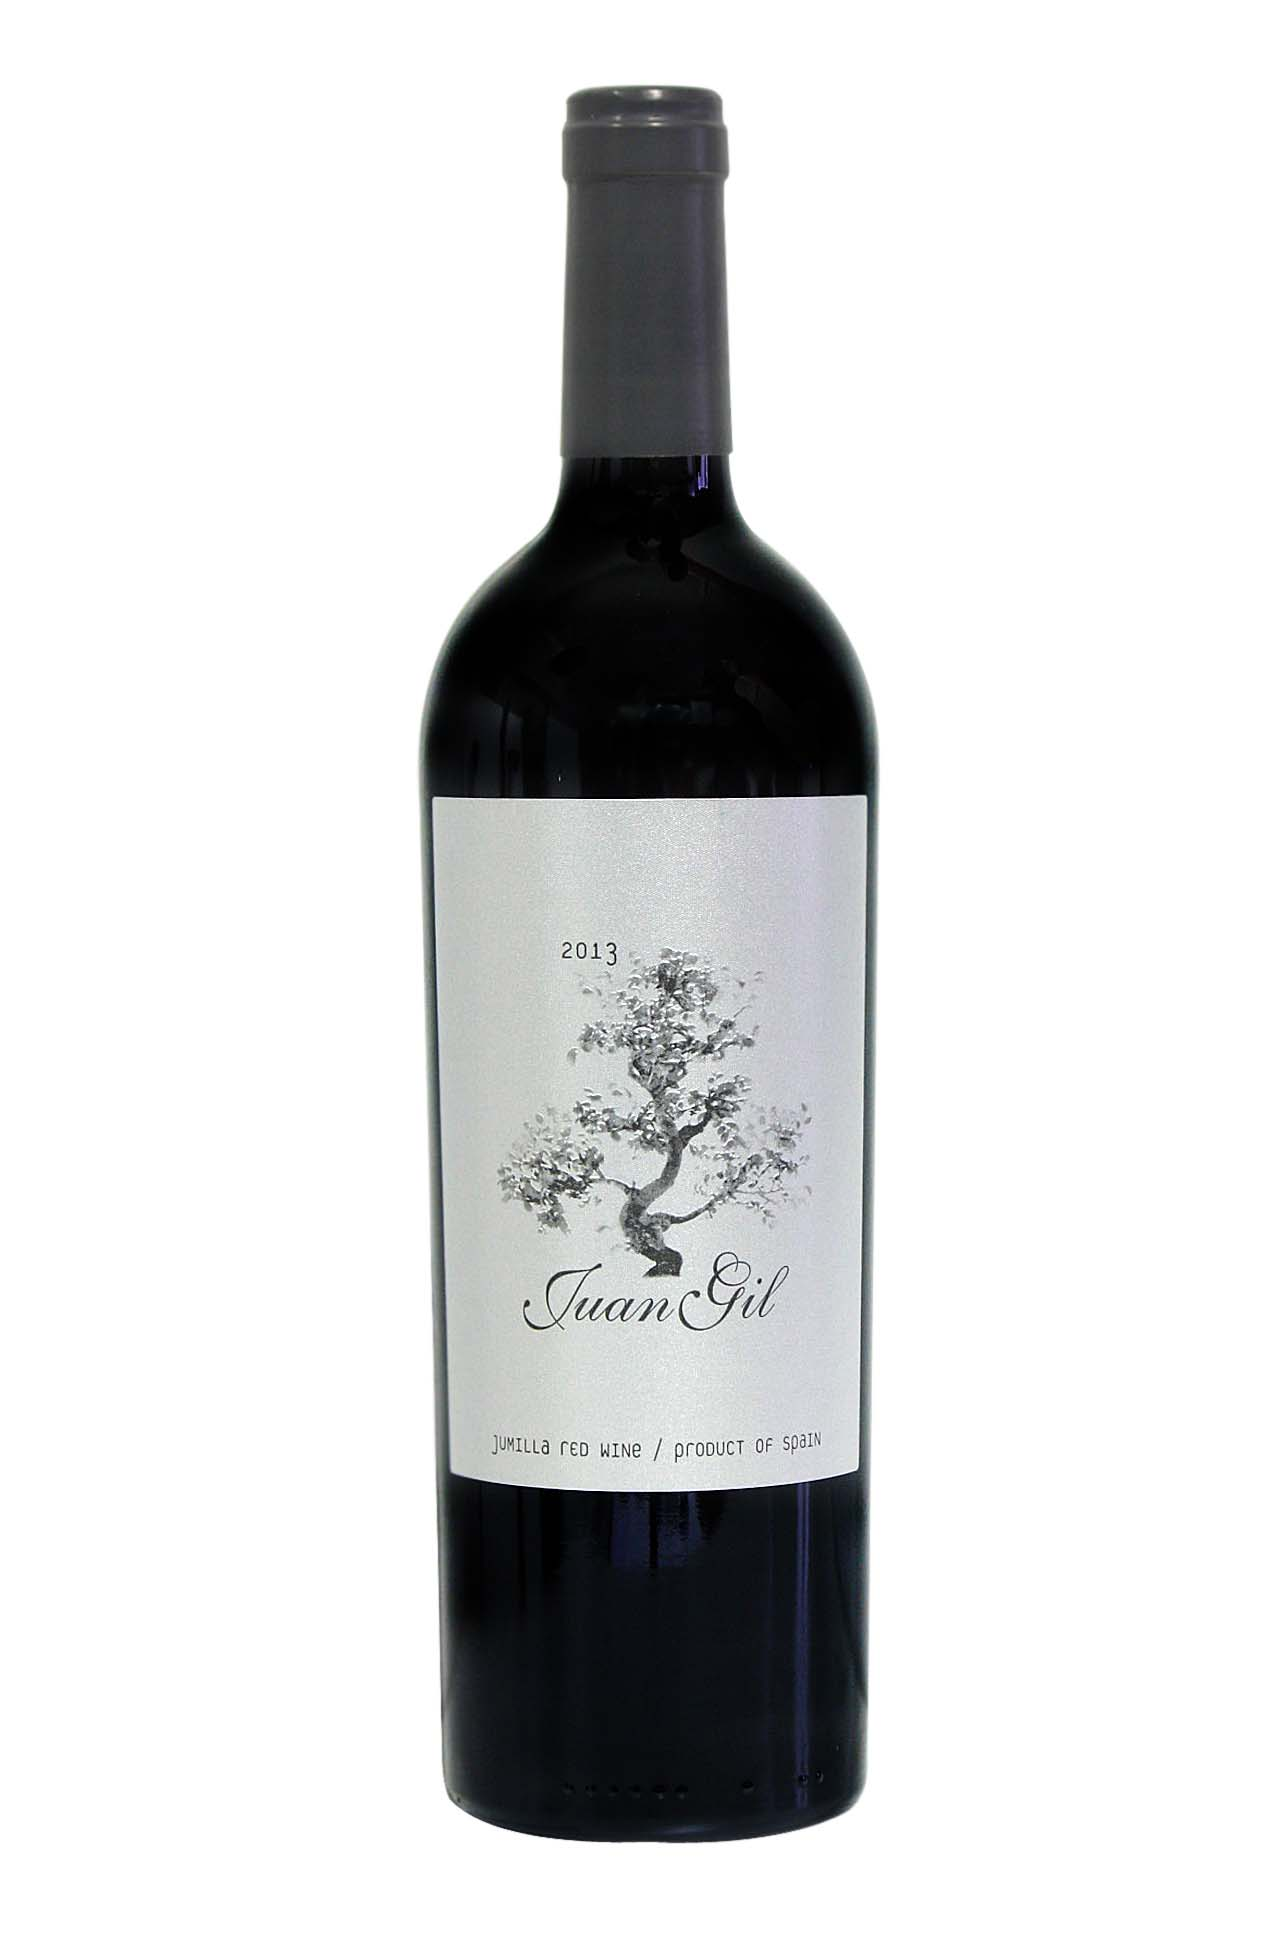 Juan Gil crianza red wine